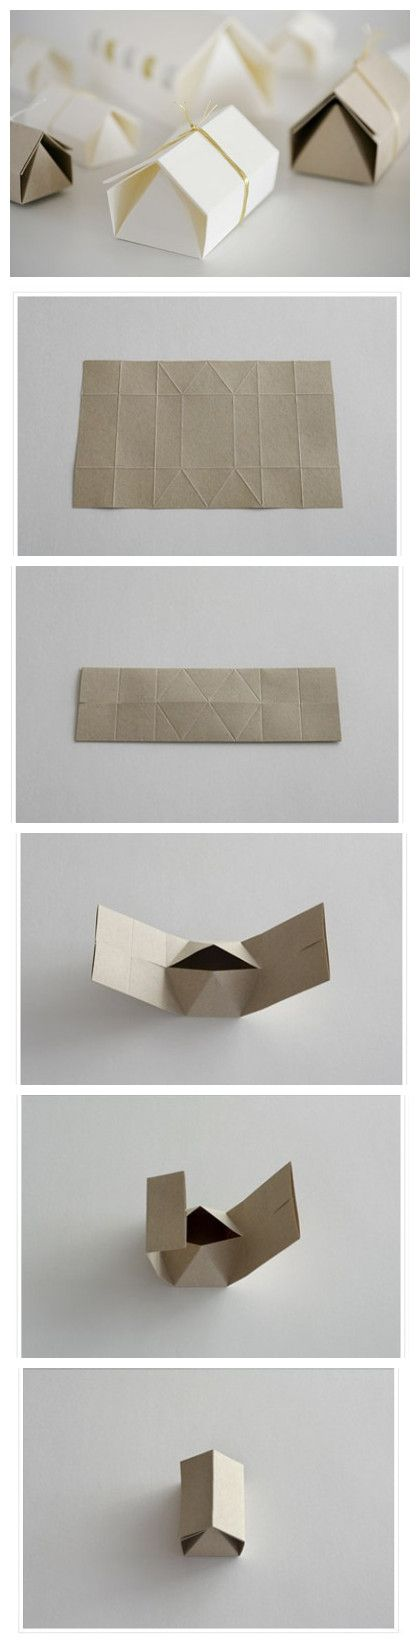 .: Gift Boxes, House Gift, Paper Craft, Packaging, Diy, Paper Houses